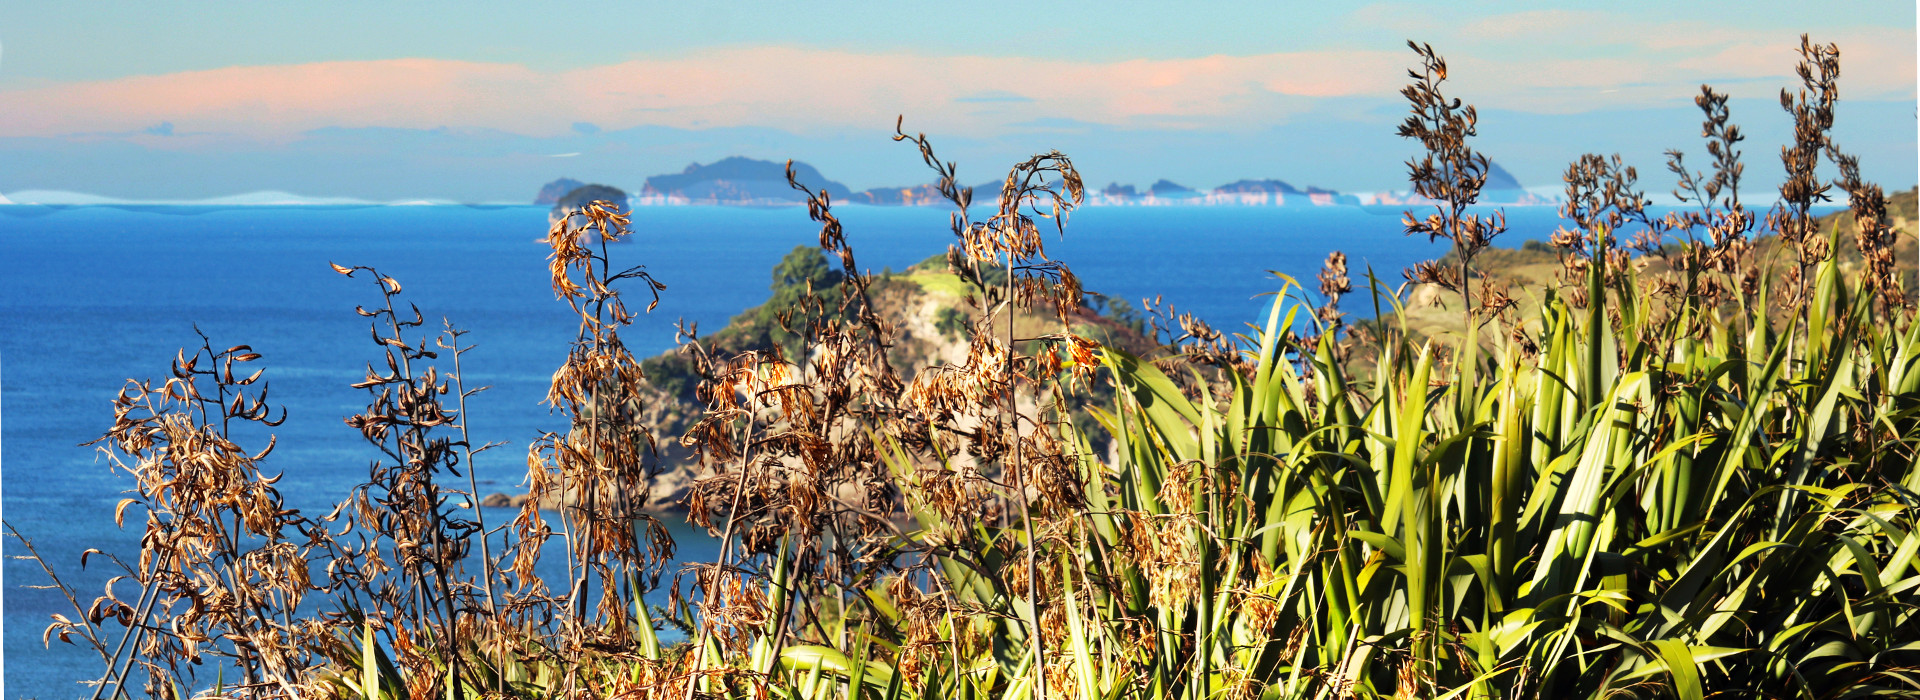 Coastal view, flax, islands and blue waters, Whitiangi